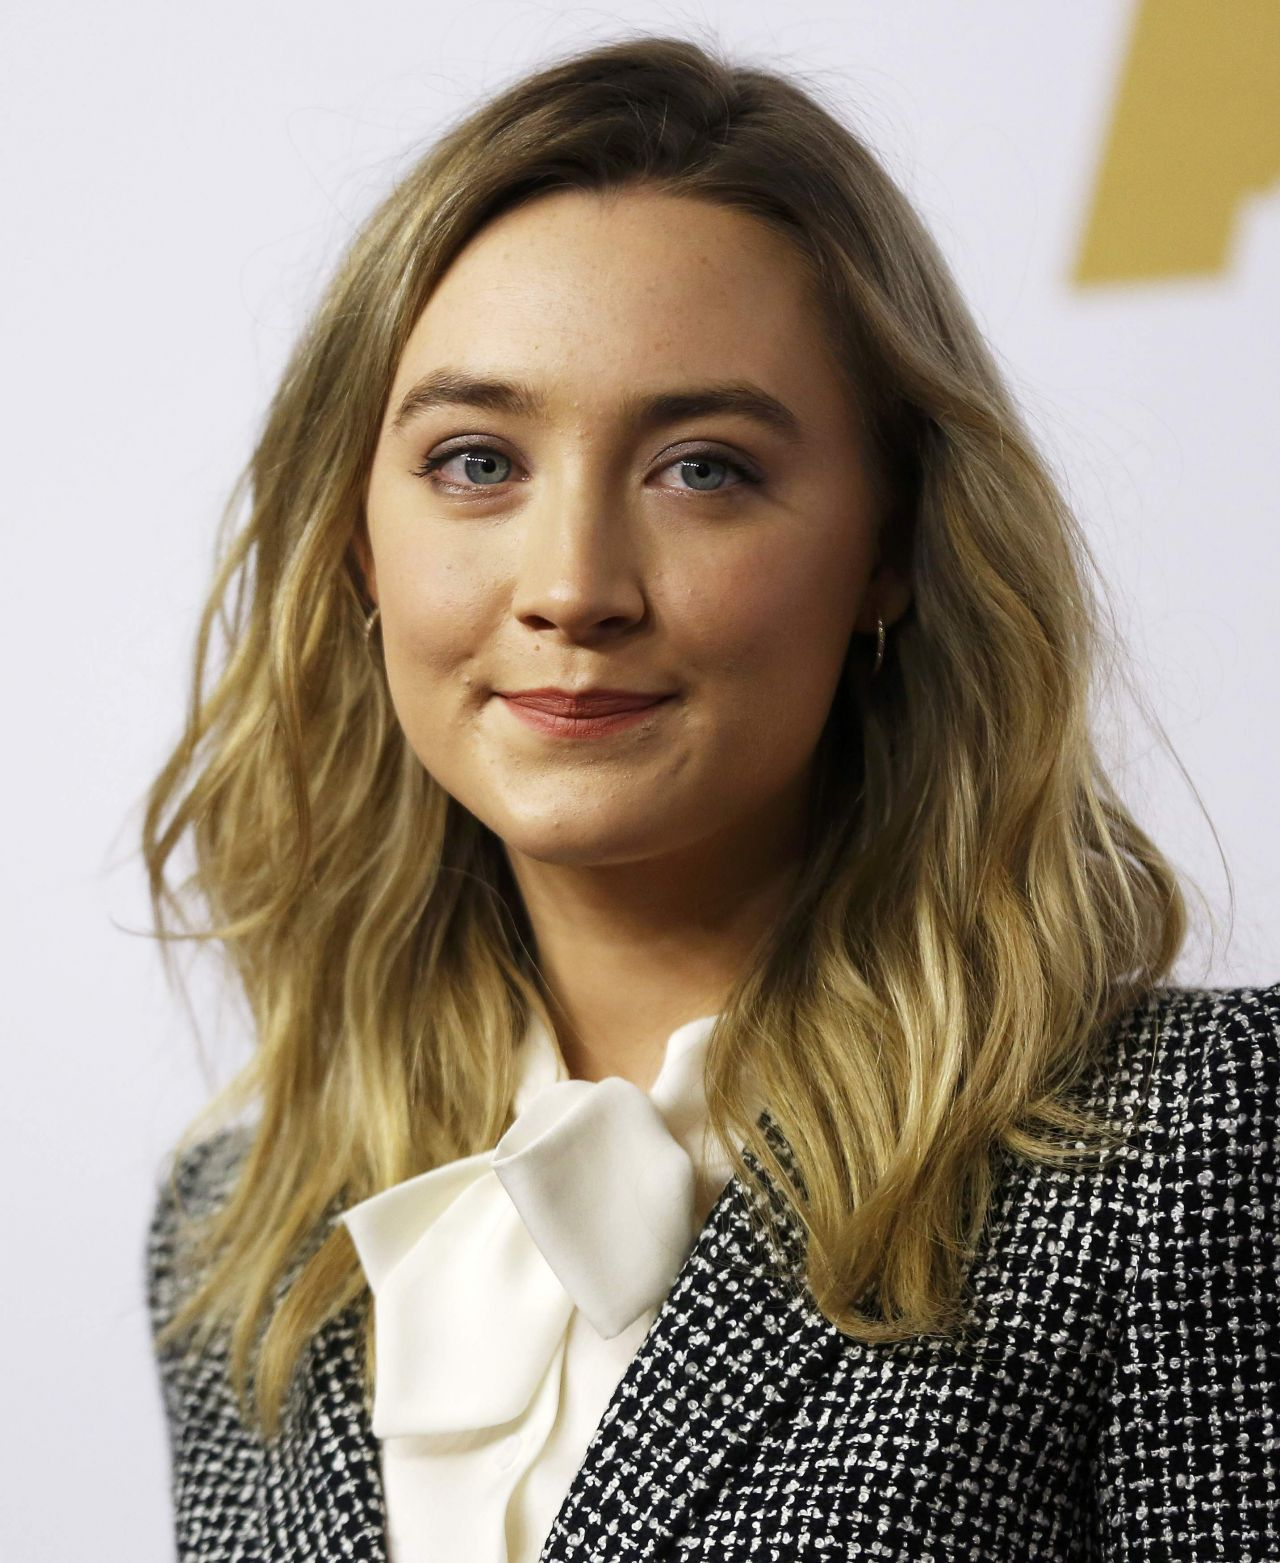 saoirse-ronan-academy-awards-2016-nominee-luncheon-in-beverly-hills-1